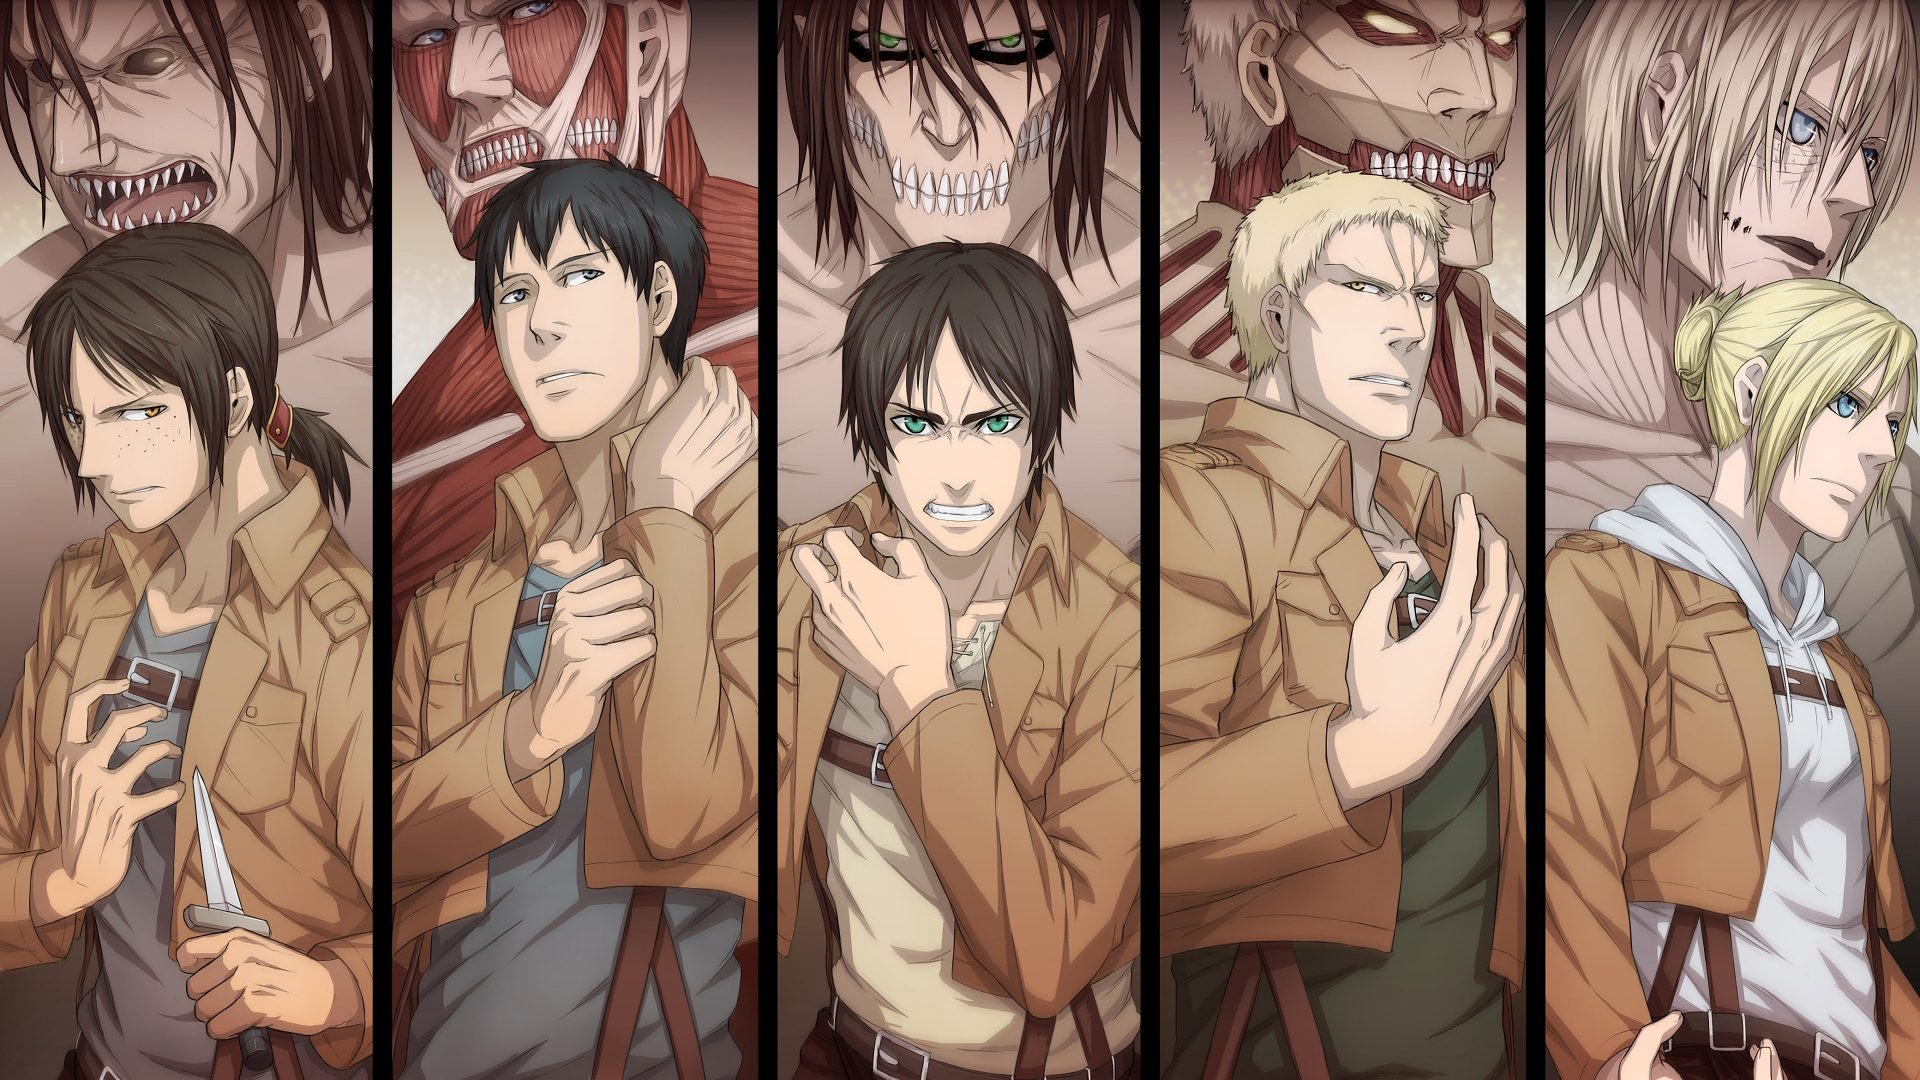 Attack On Titan Chapter 139 Ending Spoilers All The Titans Will Die In The Manga Finale Block Toro